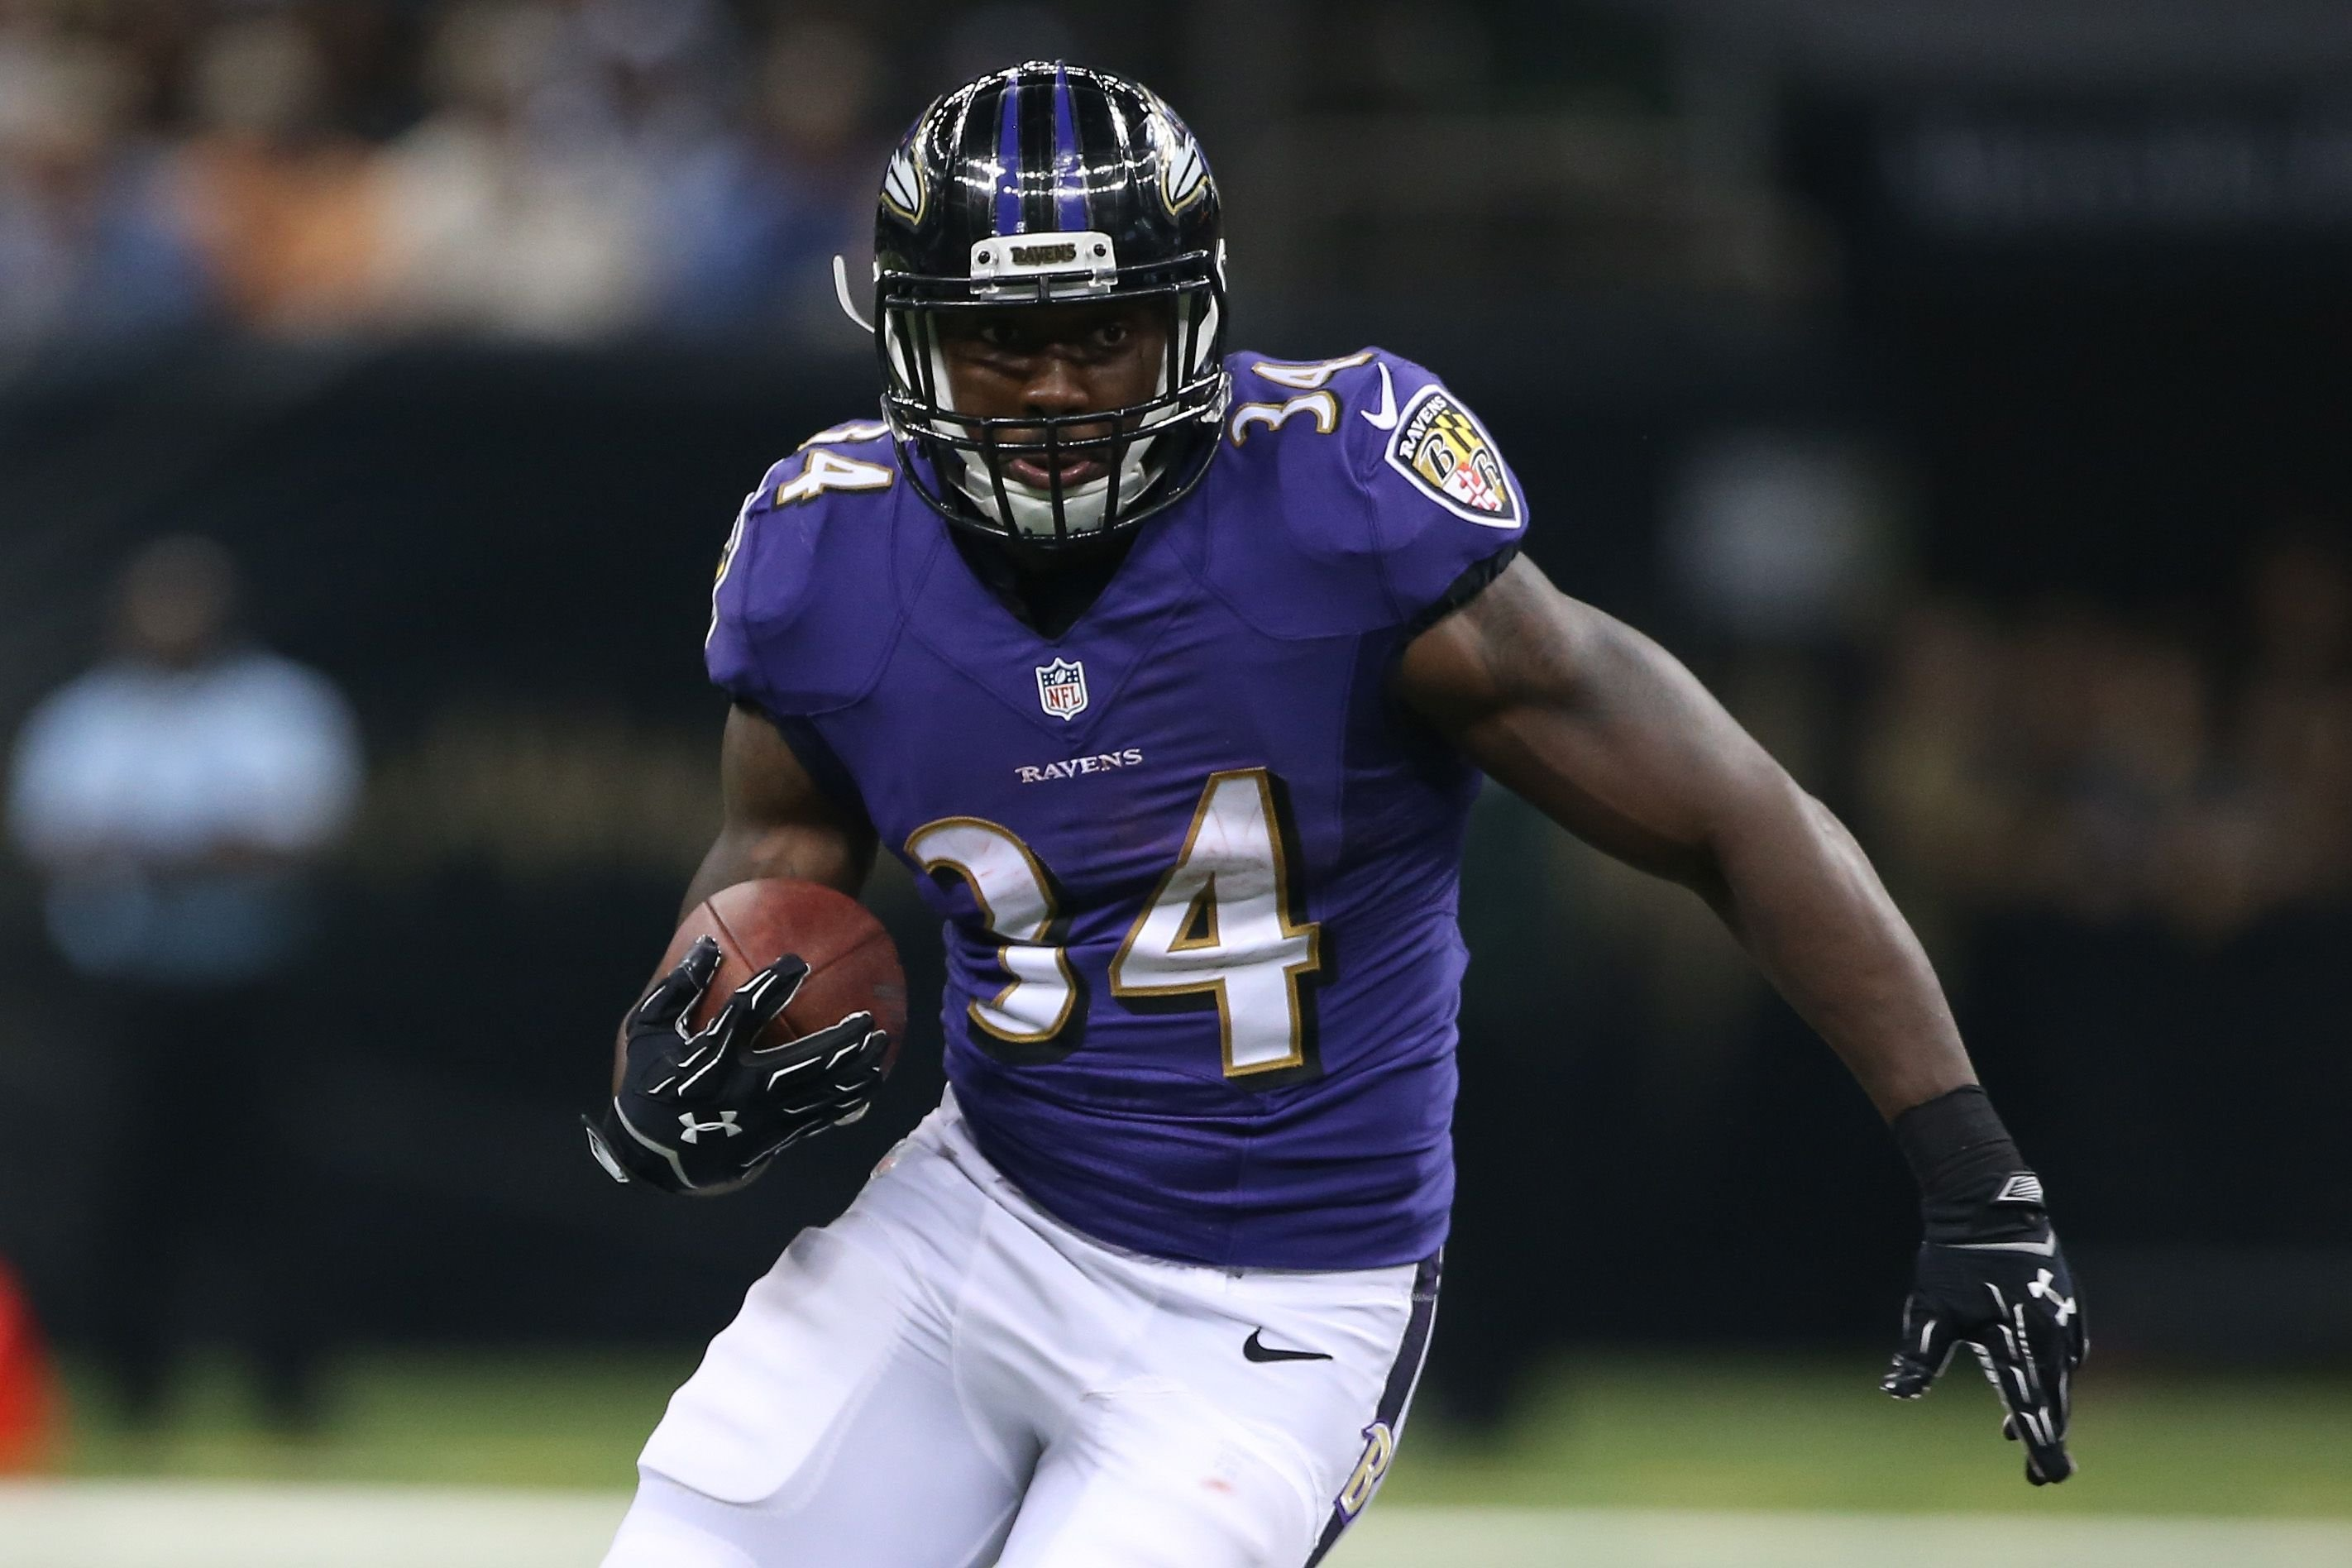 Lorenzo Taliaferro of the Baltimore Ravens playing against the New Orleans Saints on August 28, 2014, in New Orleans, Louisiana | Photo:Chris Graythen/Getty Images